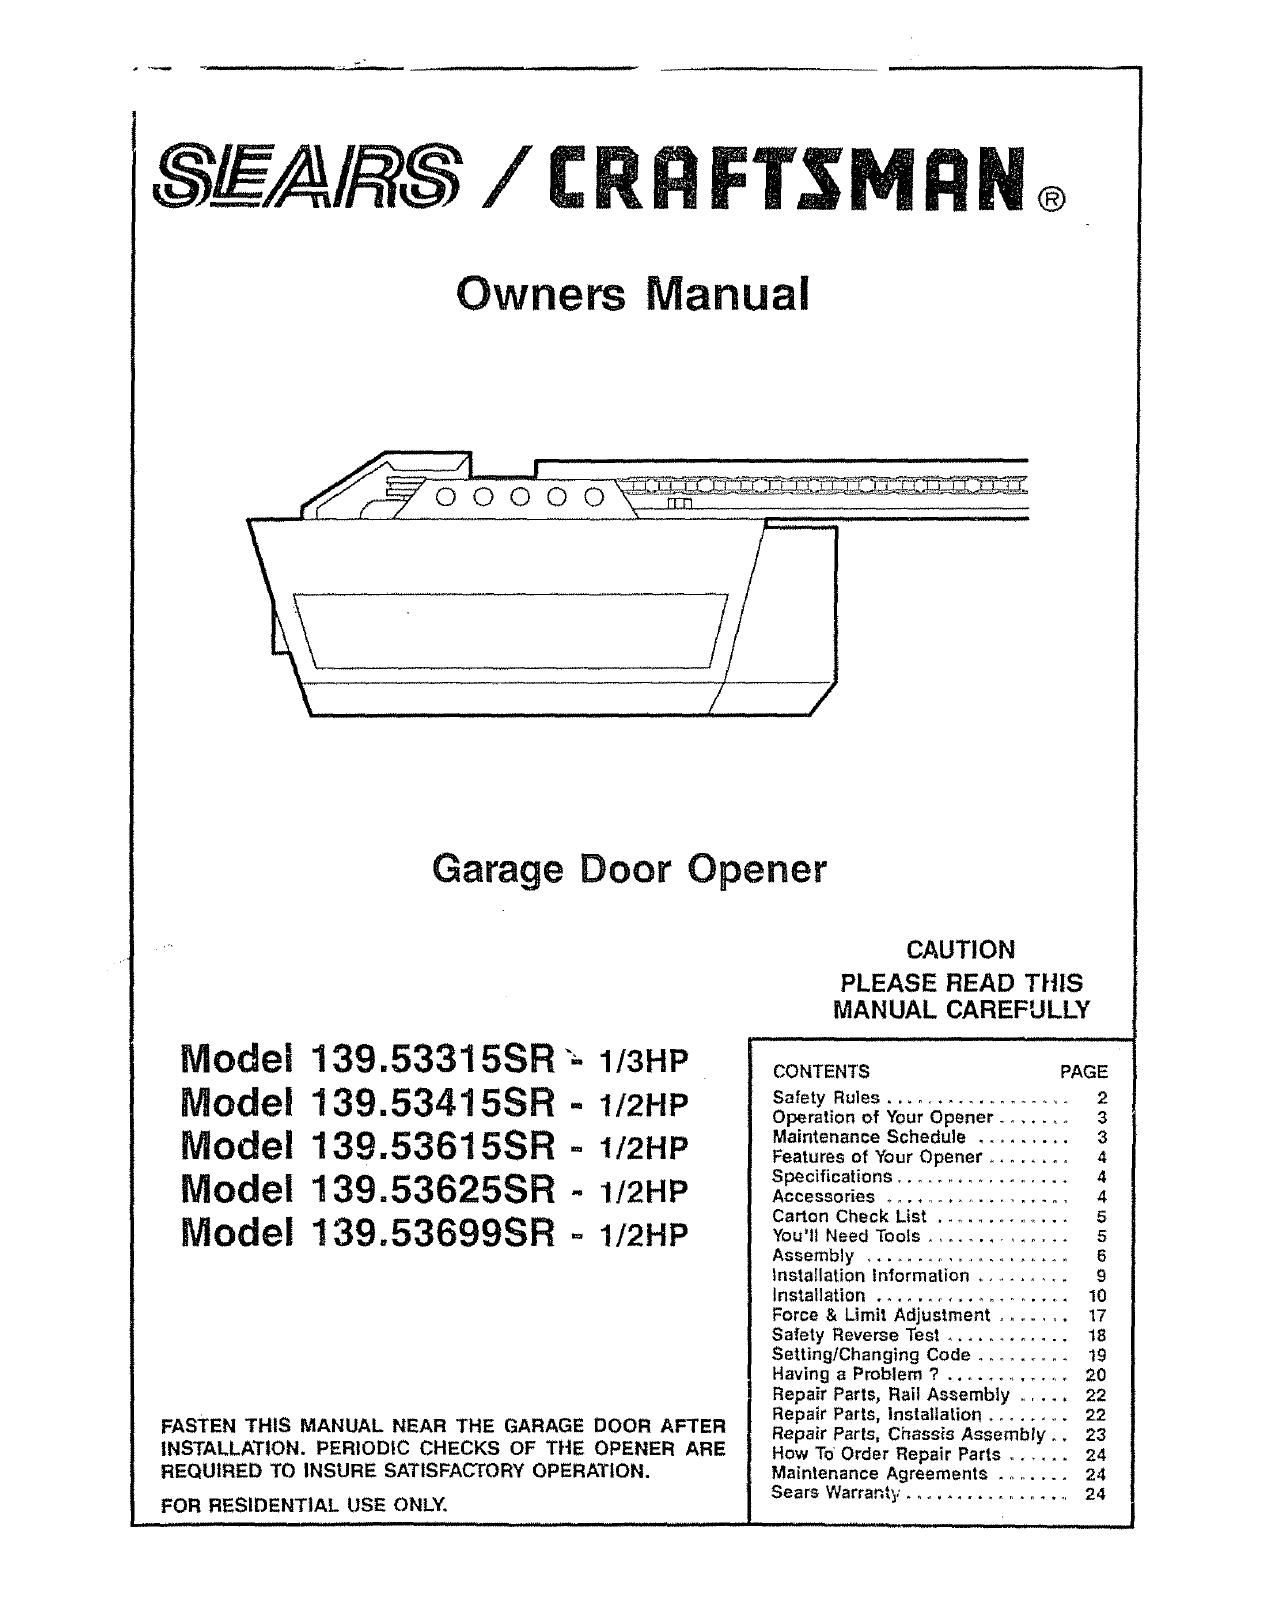 0e004051 b1a7 41ba aa2e a3df9eb09257 bg1 craftsman garage door opener 139 53315sr user guide craftsman garage door opener wiring diagram at eliteediting.co